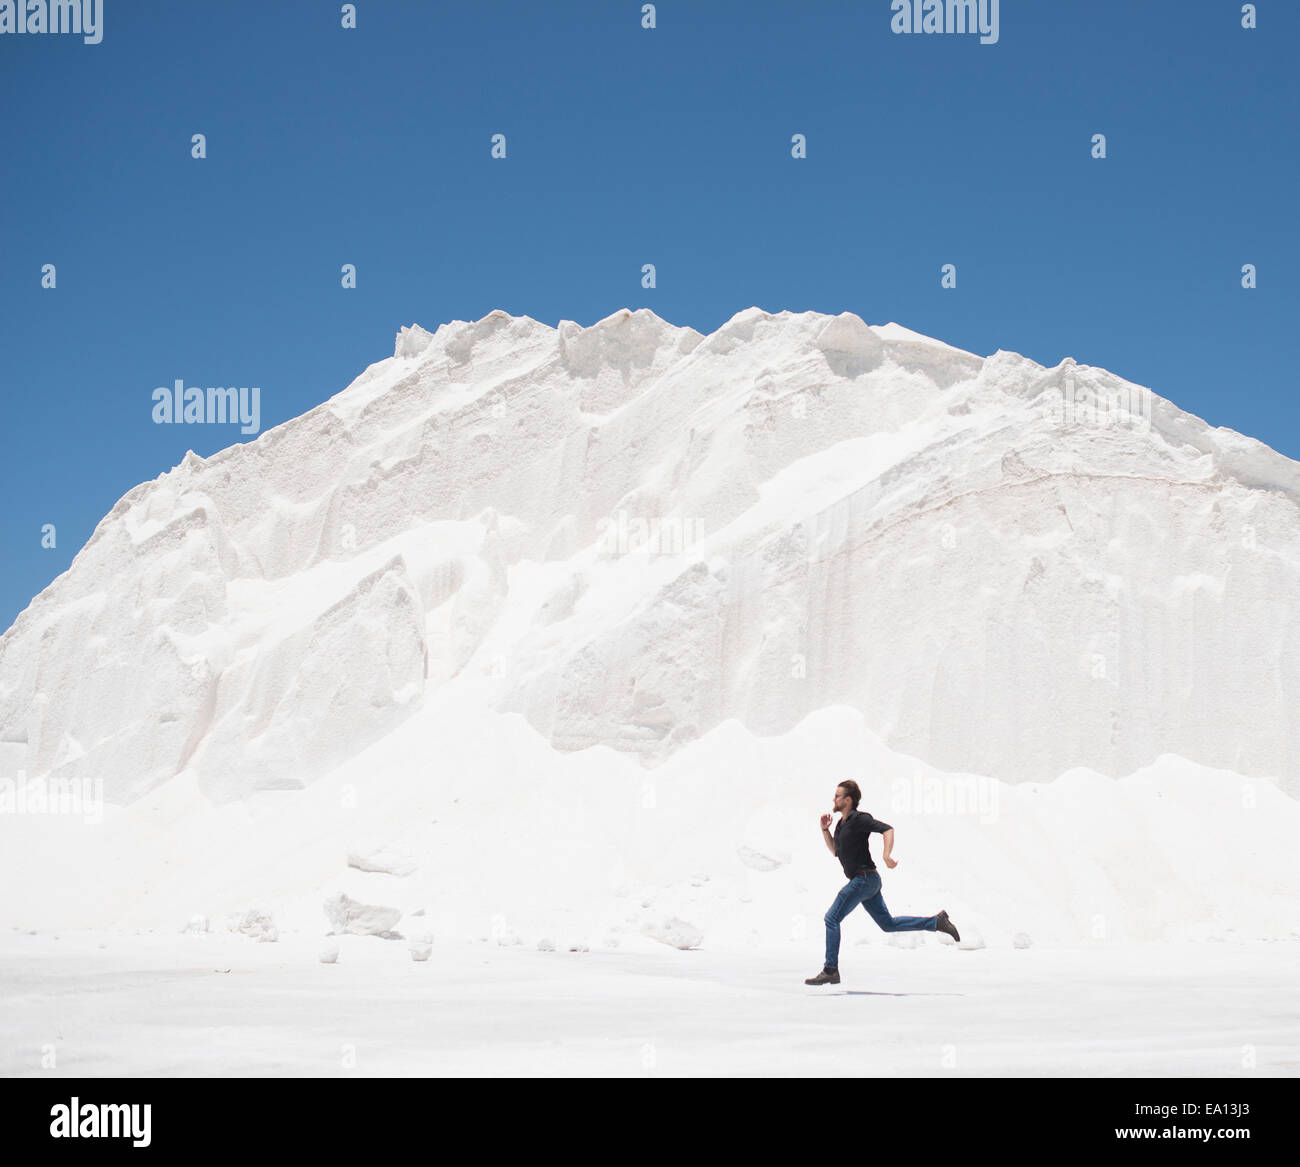 Man running in front of white mountain - Stock Image